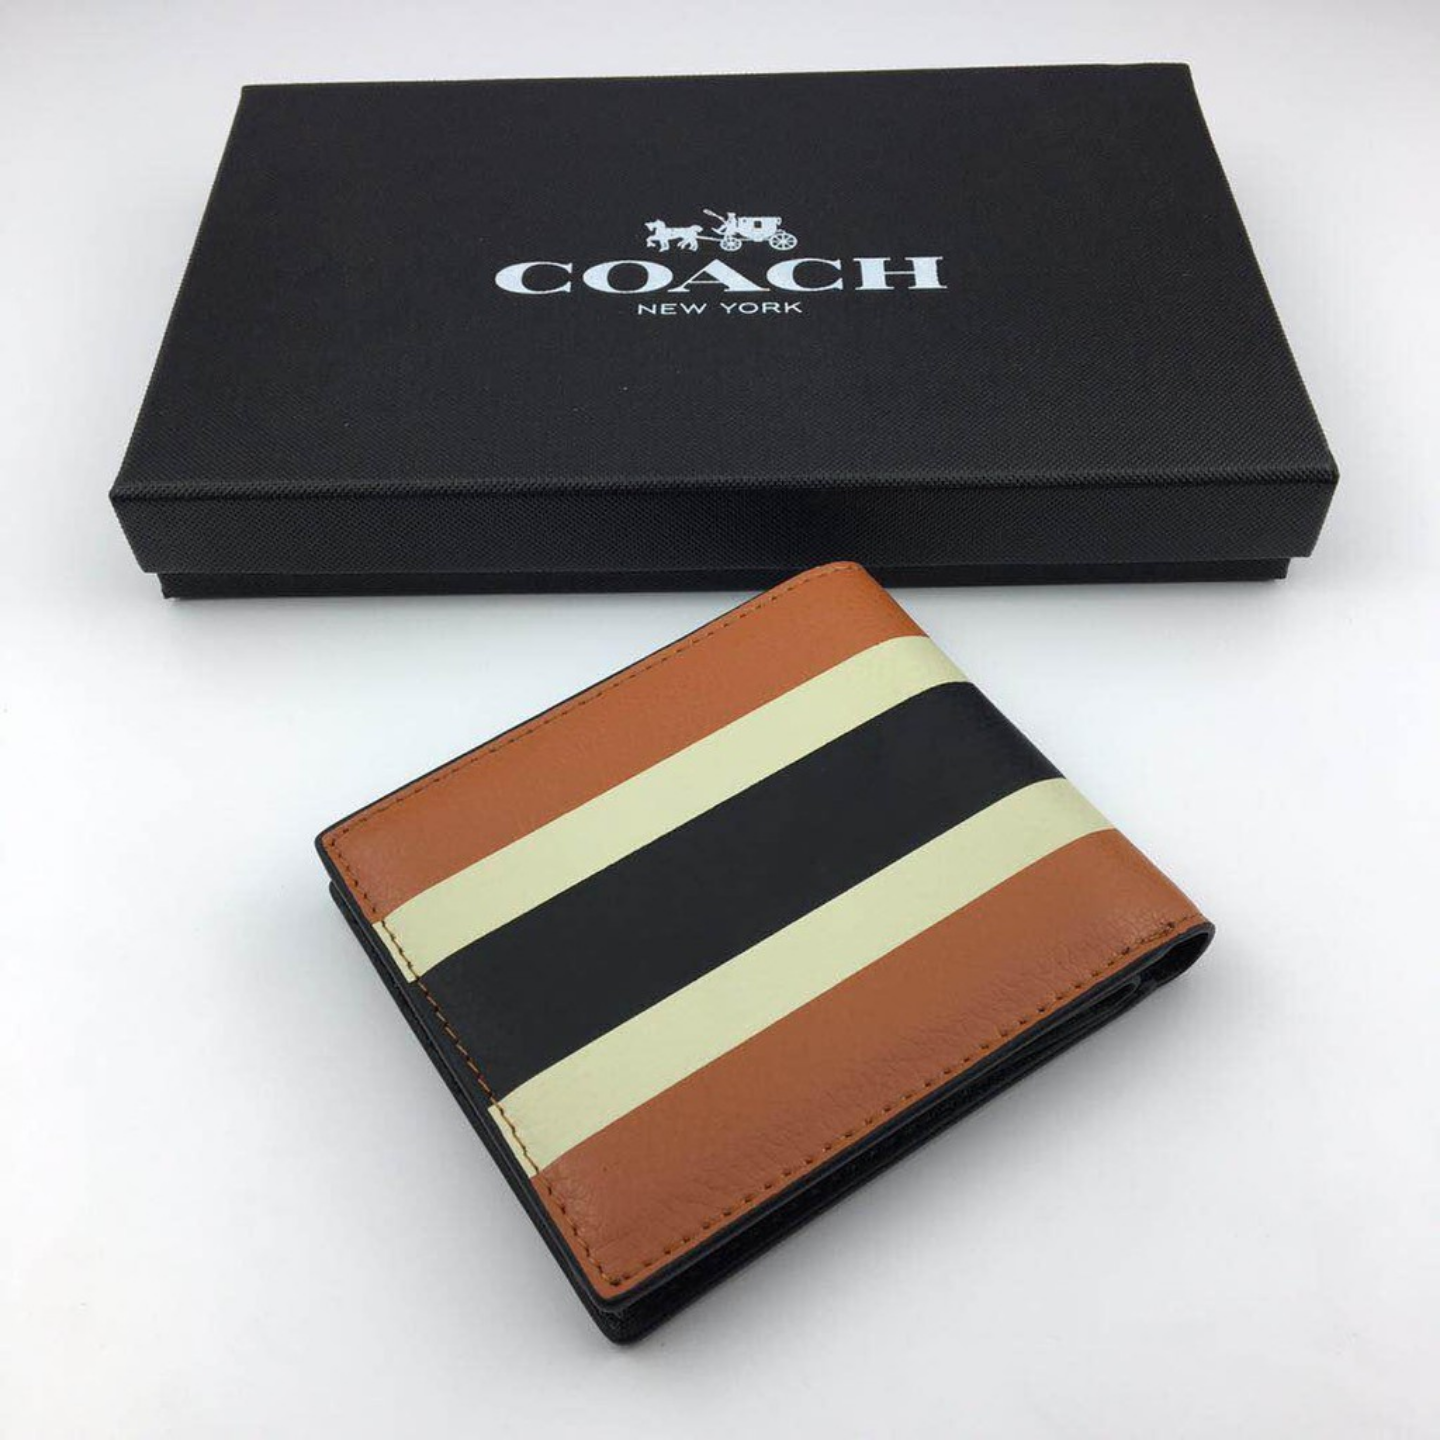 (SG COD) Coach Men's Wallet Fashion Wallet Short Wallet F75086